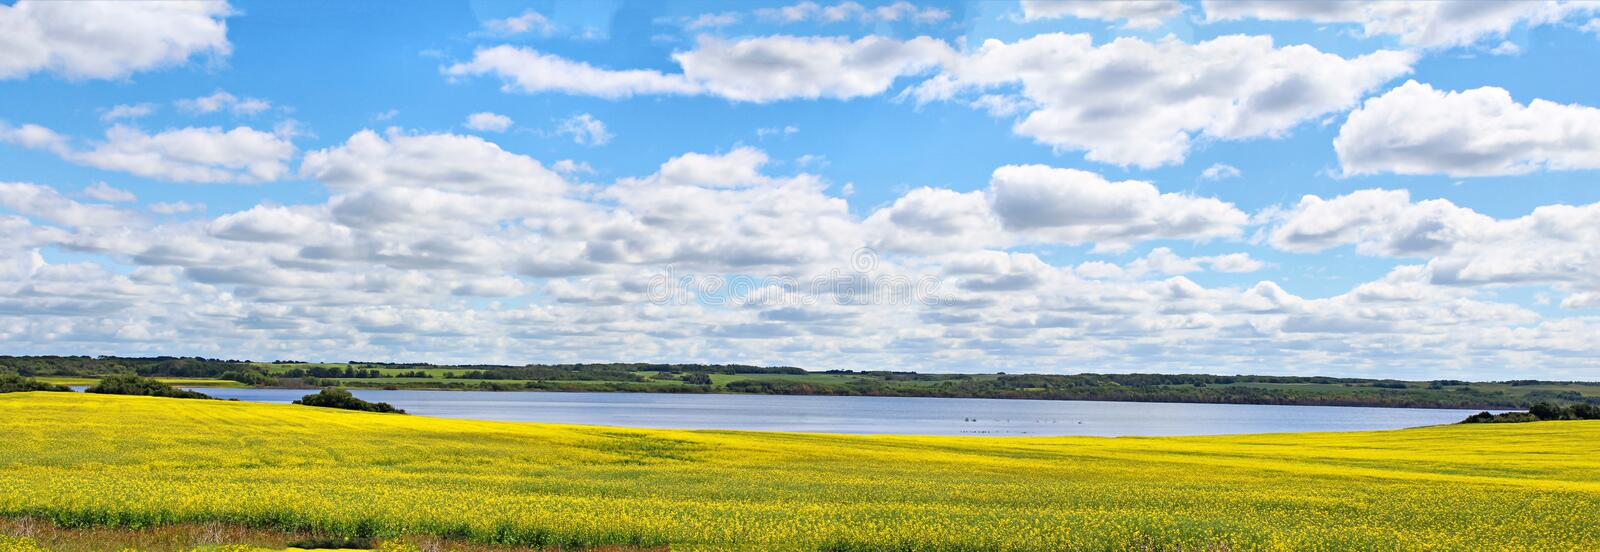 Surrounded By Canoloa Feilds Quotes: A Large Water Pond Surrounded By Green Pasture Stock Photo